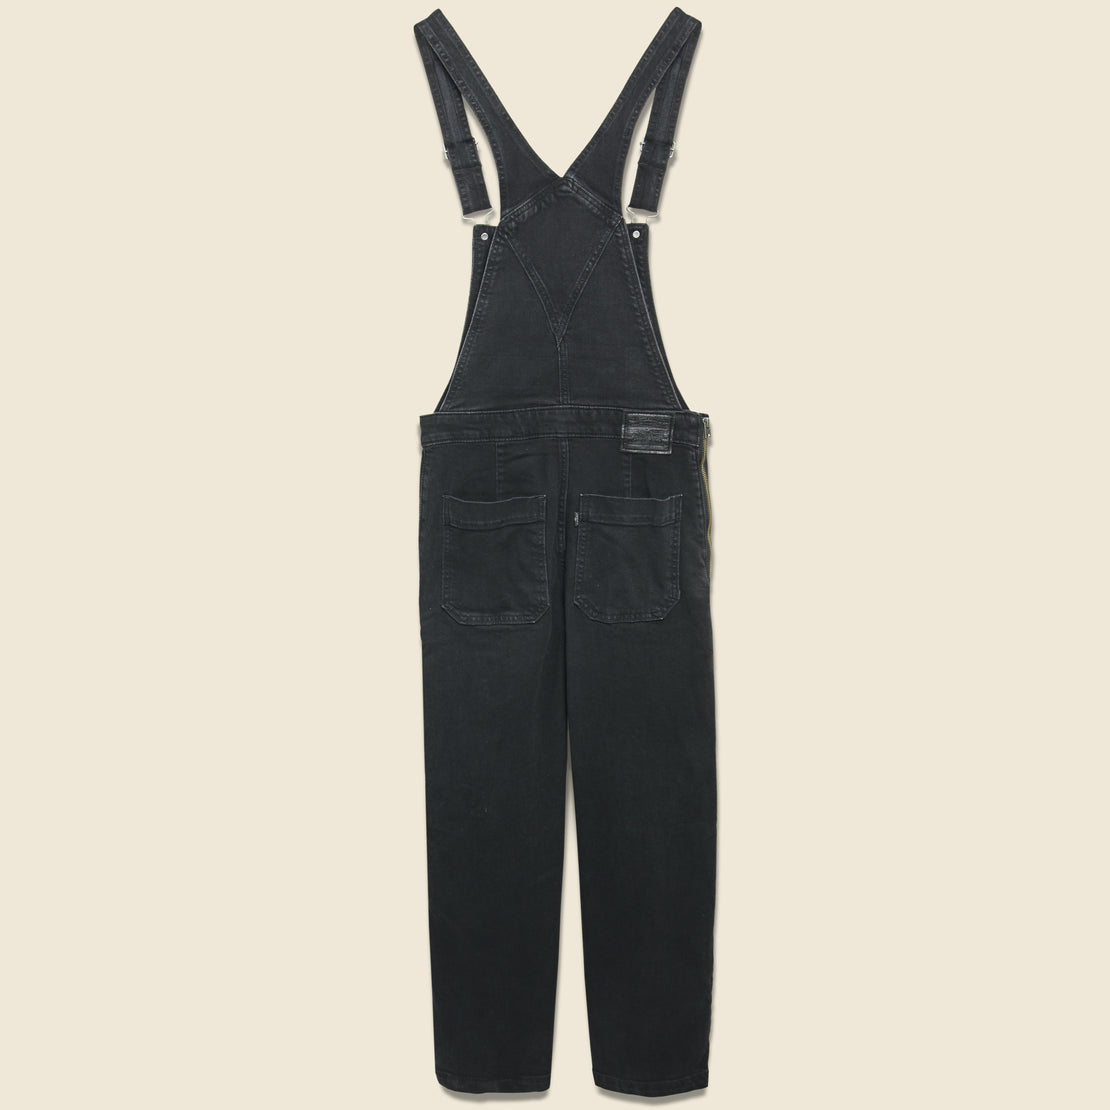 Ribcage Wide Leg Crop Overall - Black Book